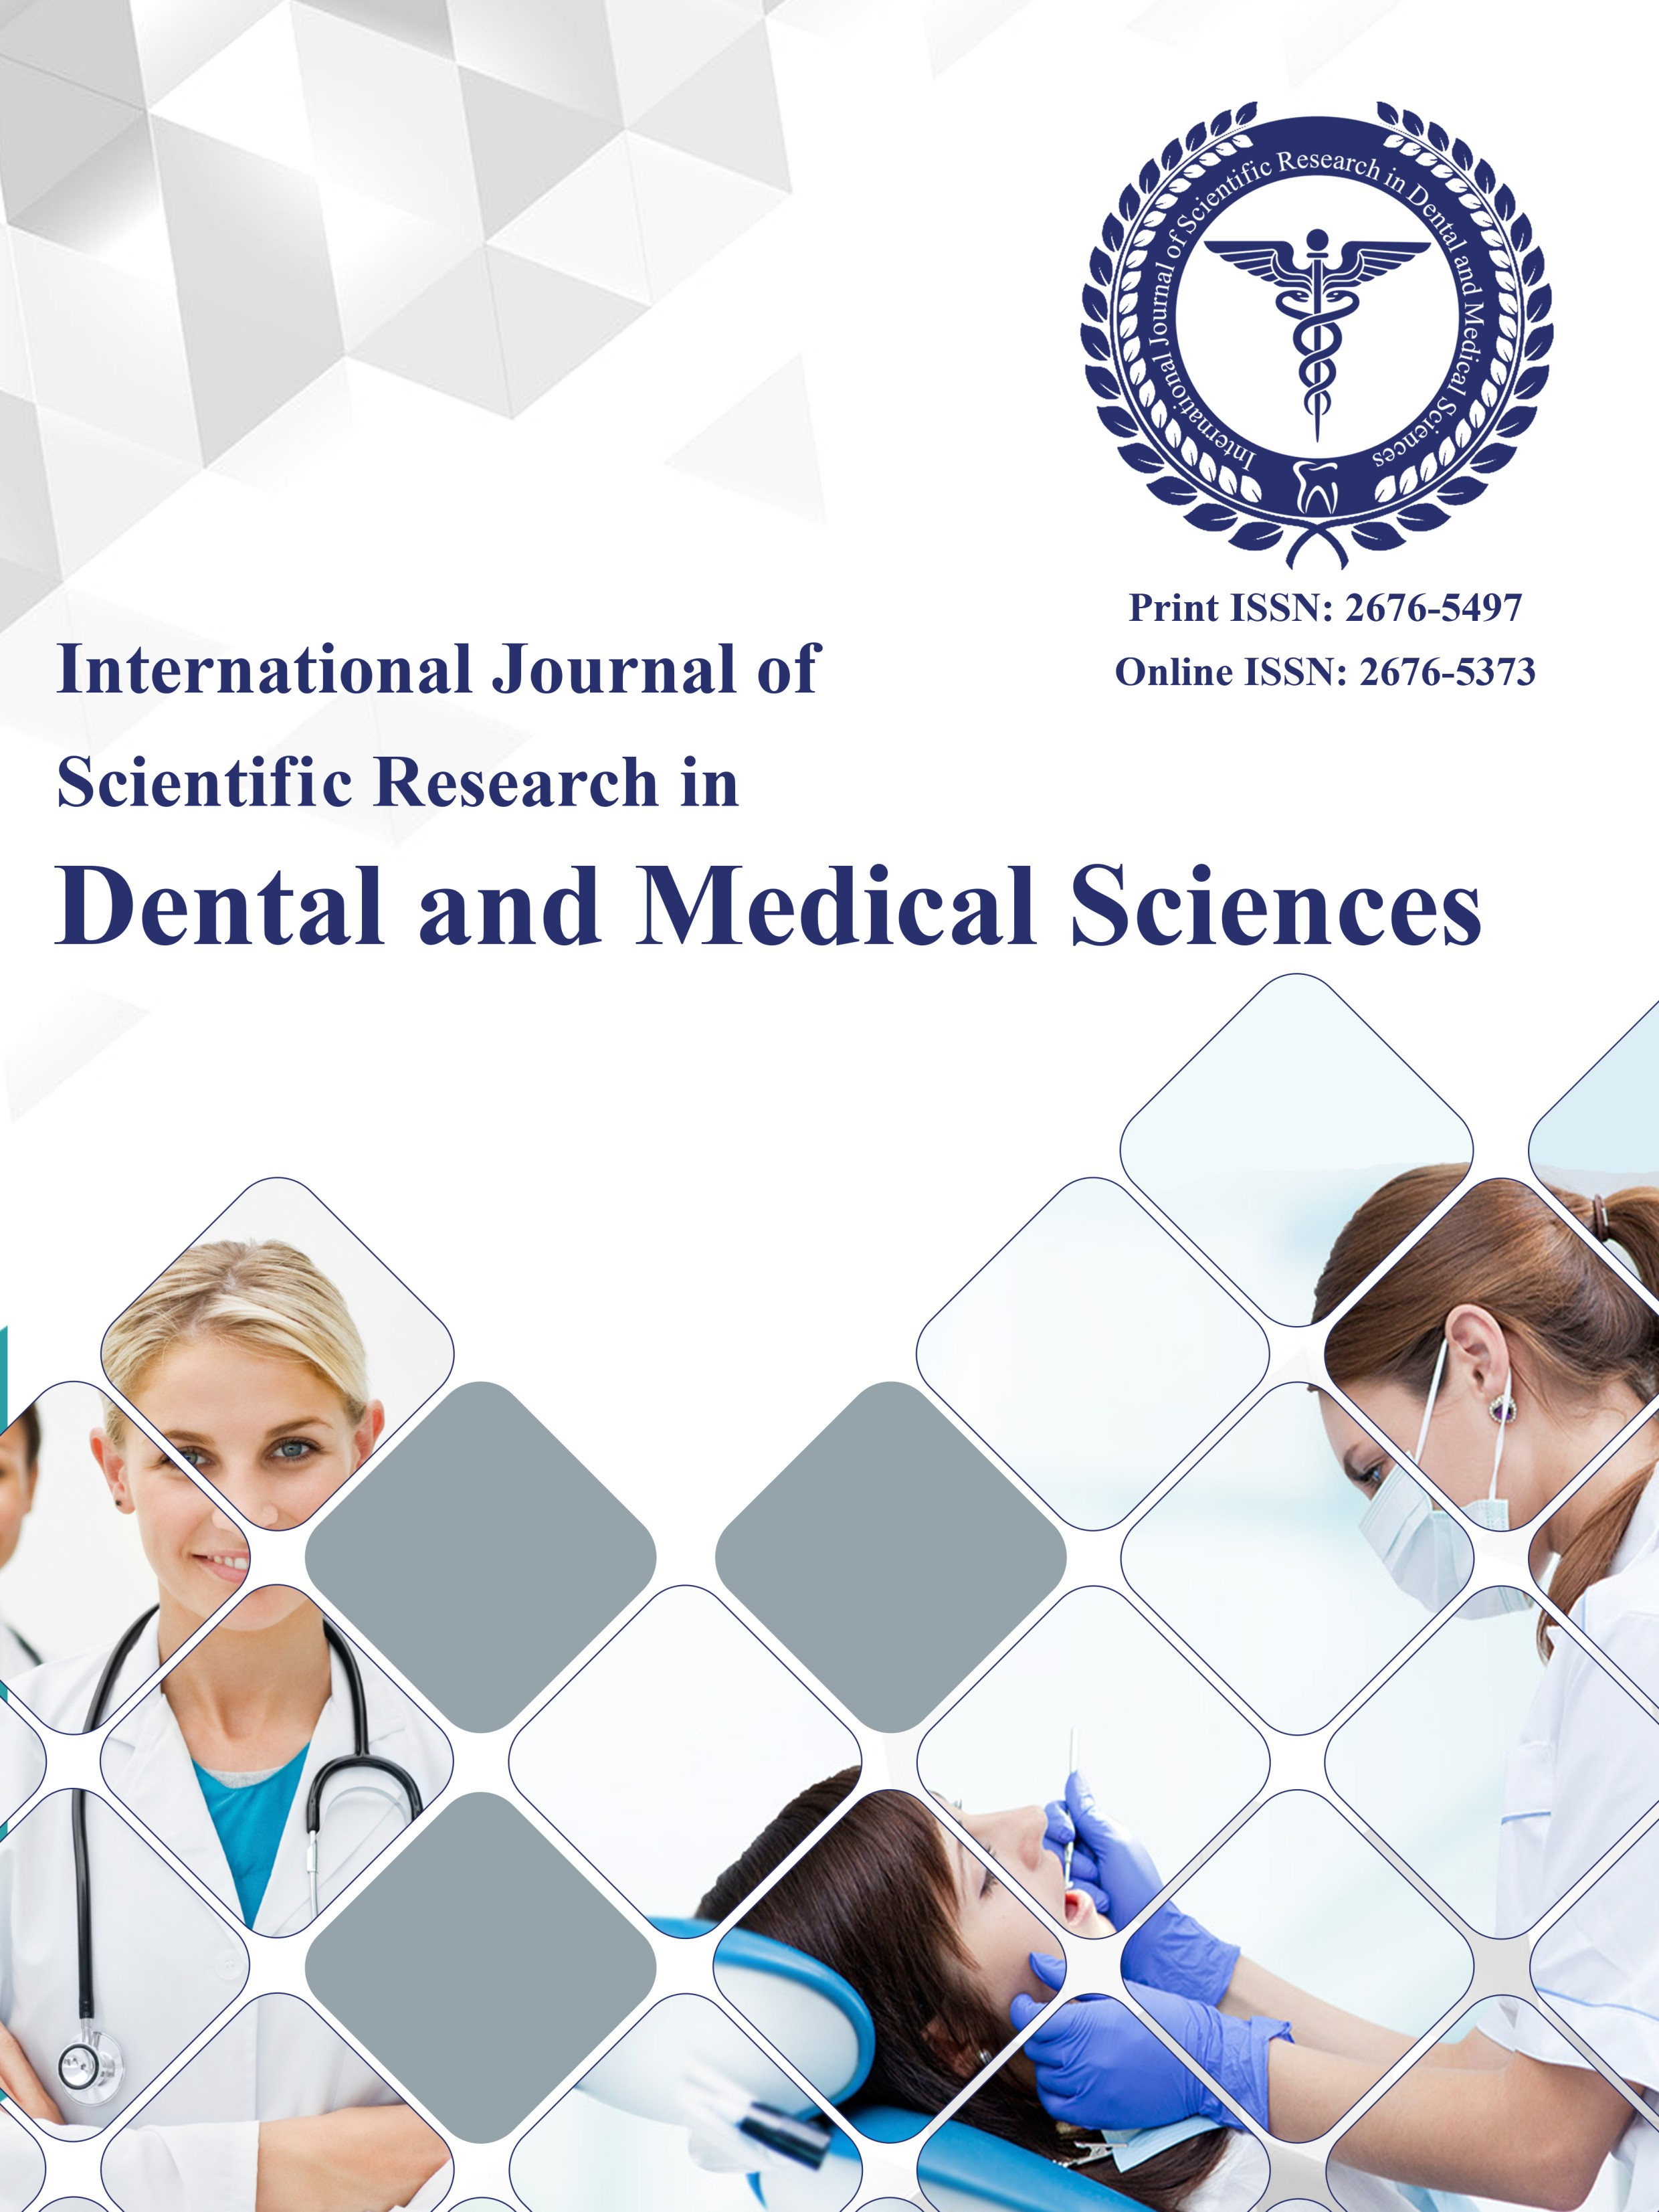 International Journal of Scientific Research in Dental and Medical Sciences